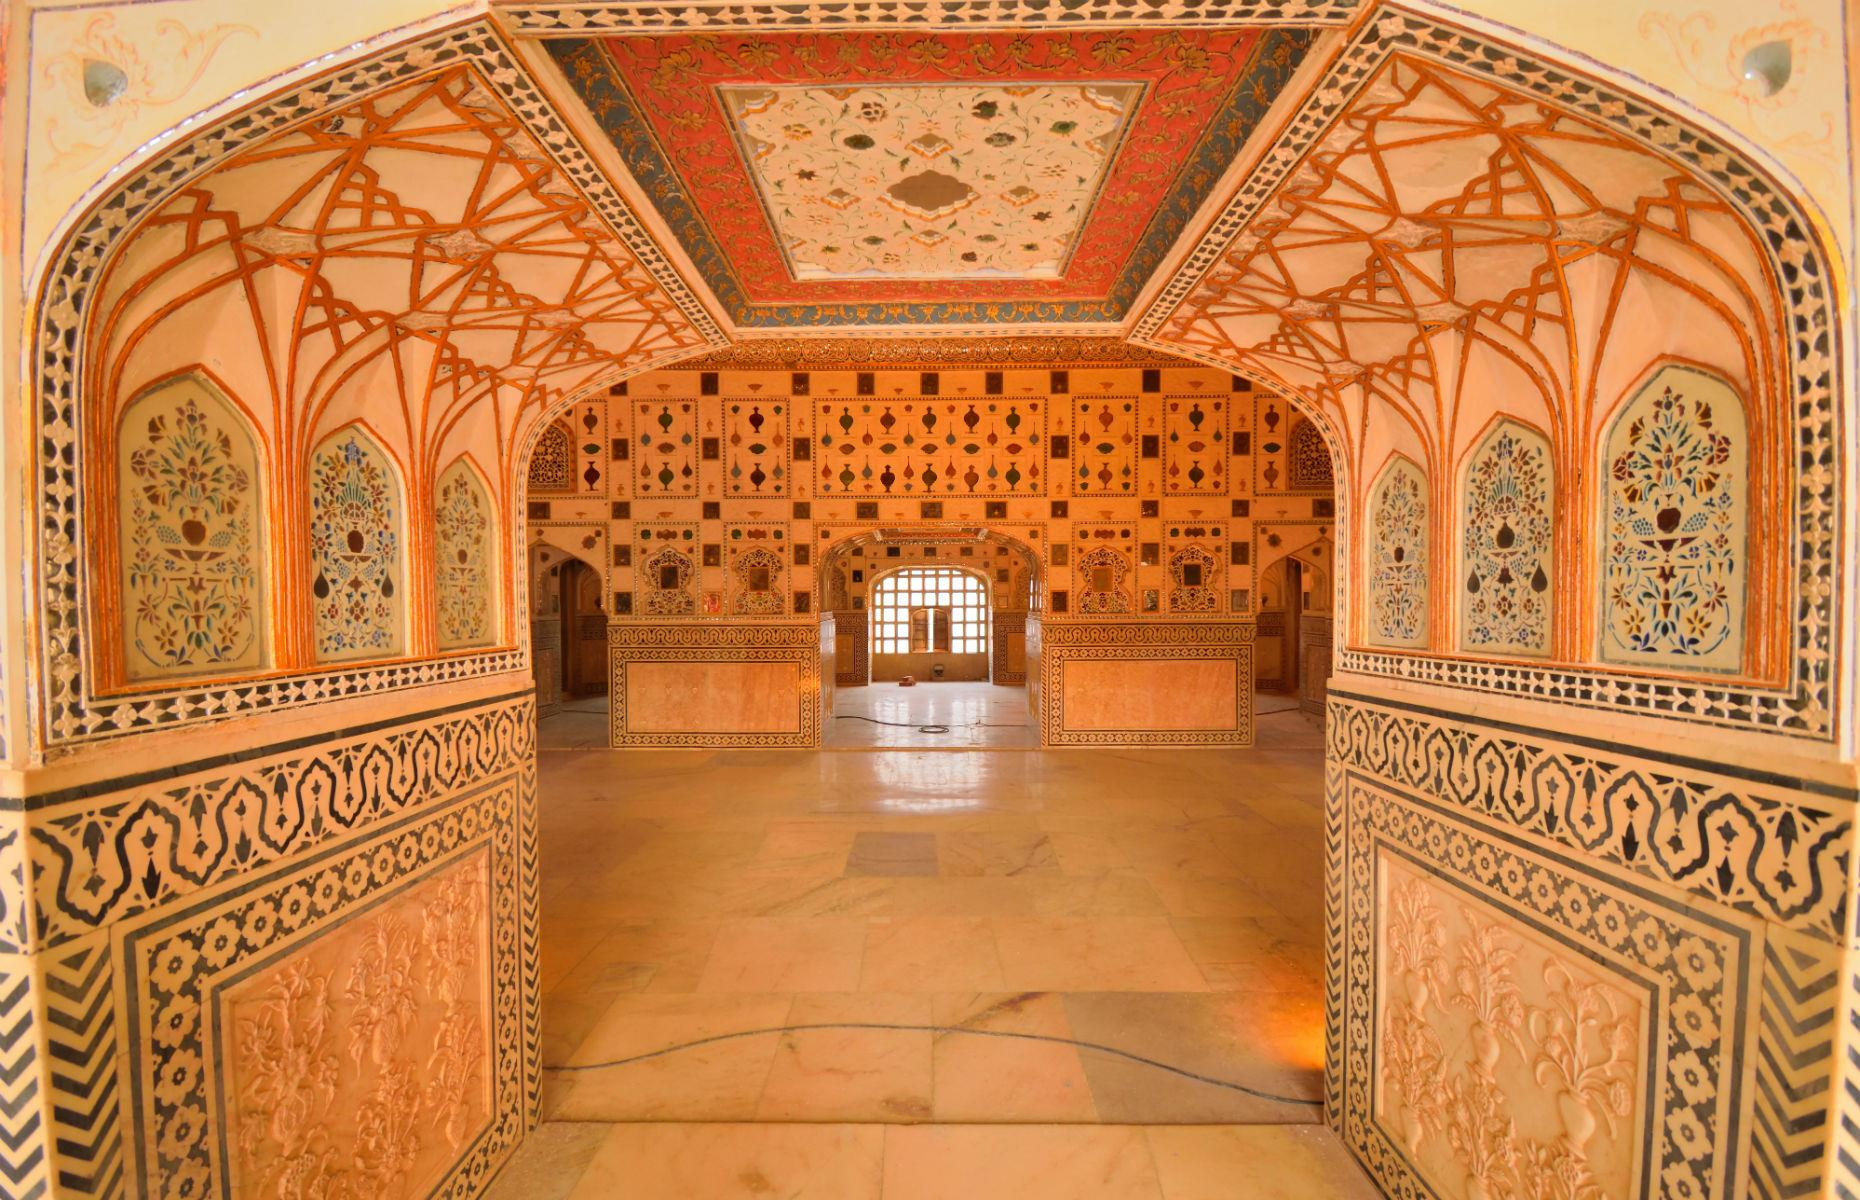 Slide 27 of 61: The imposing castle that stands today was started in the 16th century and has been the home of many Rajasthani royals over the years. Inside, the exquisite Sheesh Mahal, or mirror palace (pictured), is one of the highlights and has been immaculately preserved.